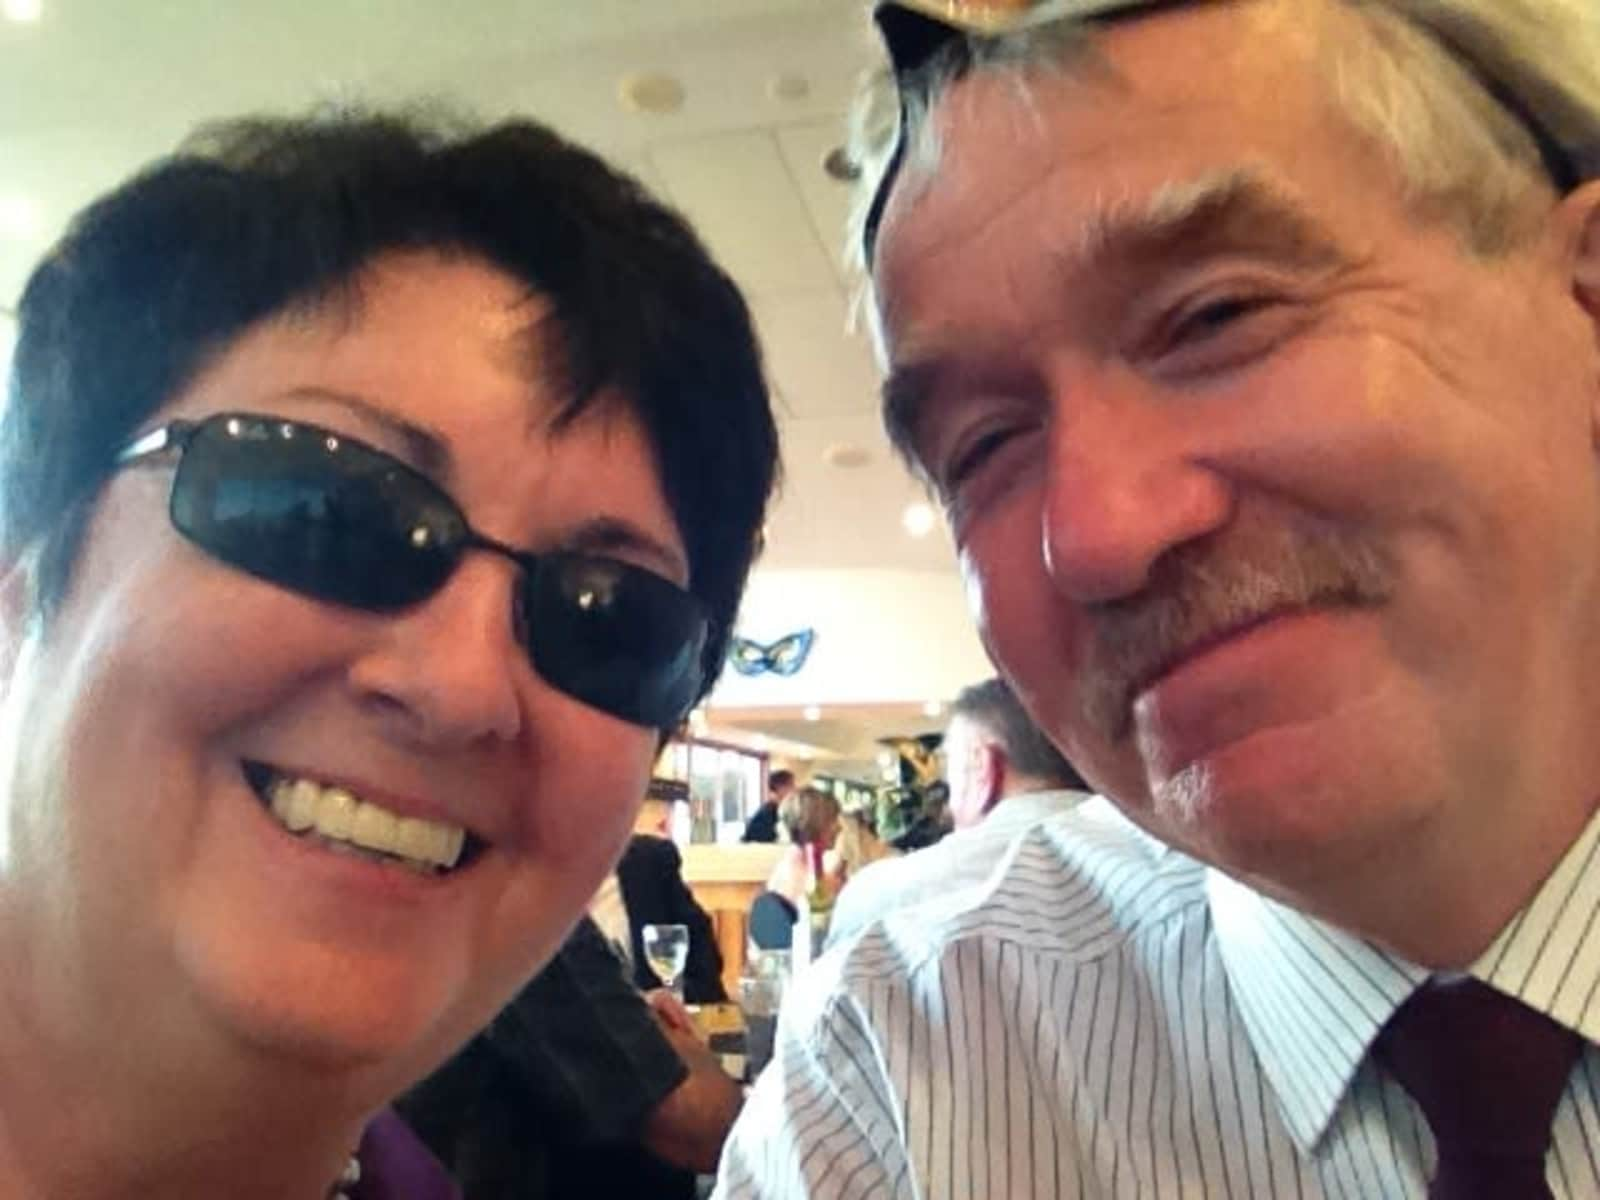 Lorraine & Andrew from Newcastle, New South Wales, Australia